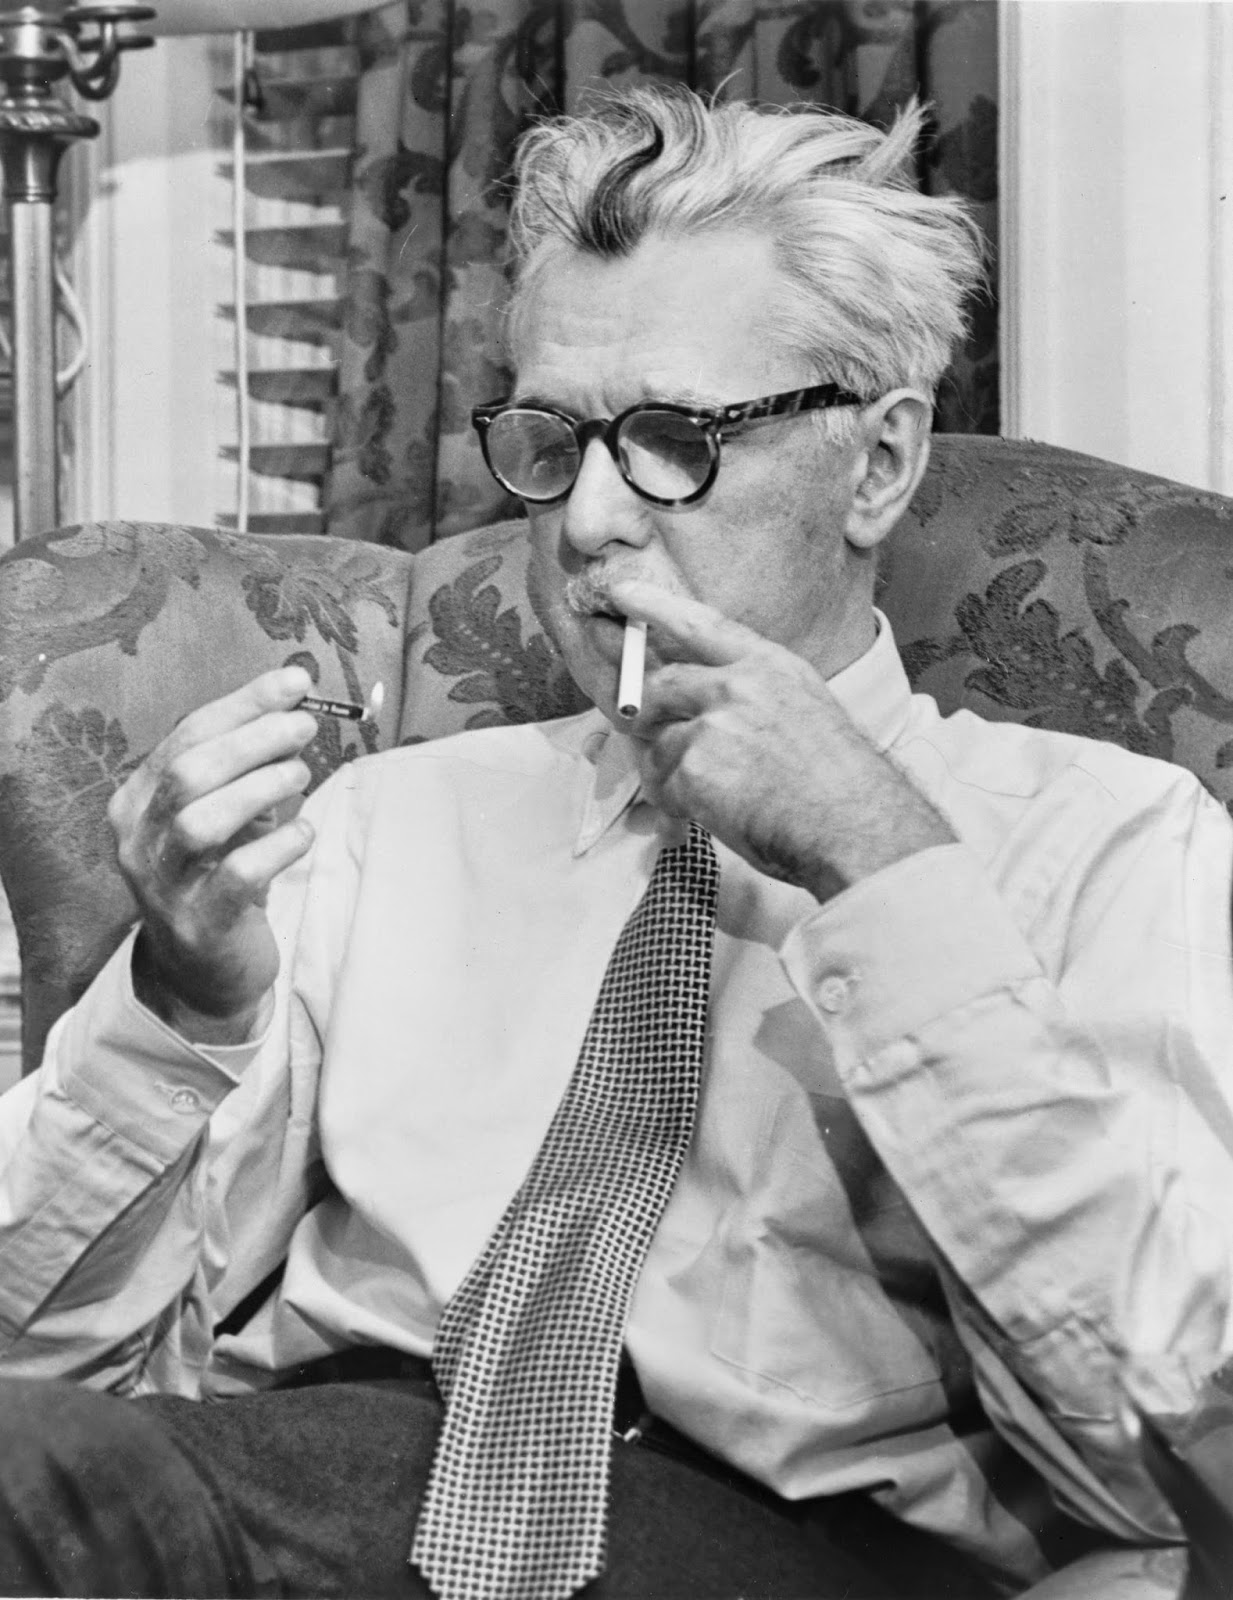 Photo of James Thurber.  Image Source: http://upload.wikimedia.org/wikipedia/commons/8/8c/James_Thurber_NYWTS.jpg